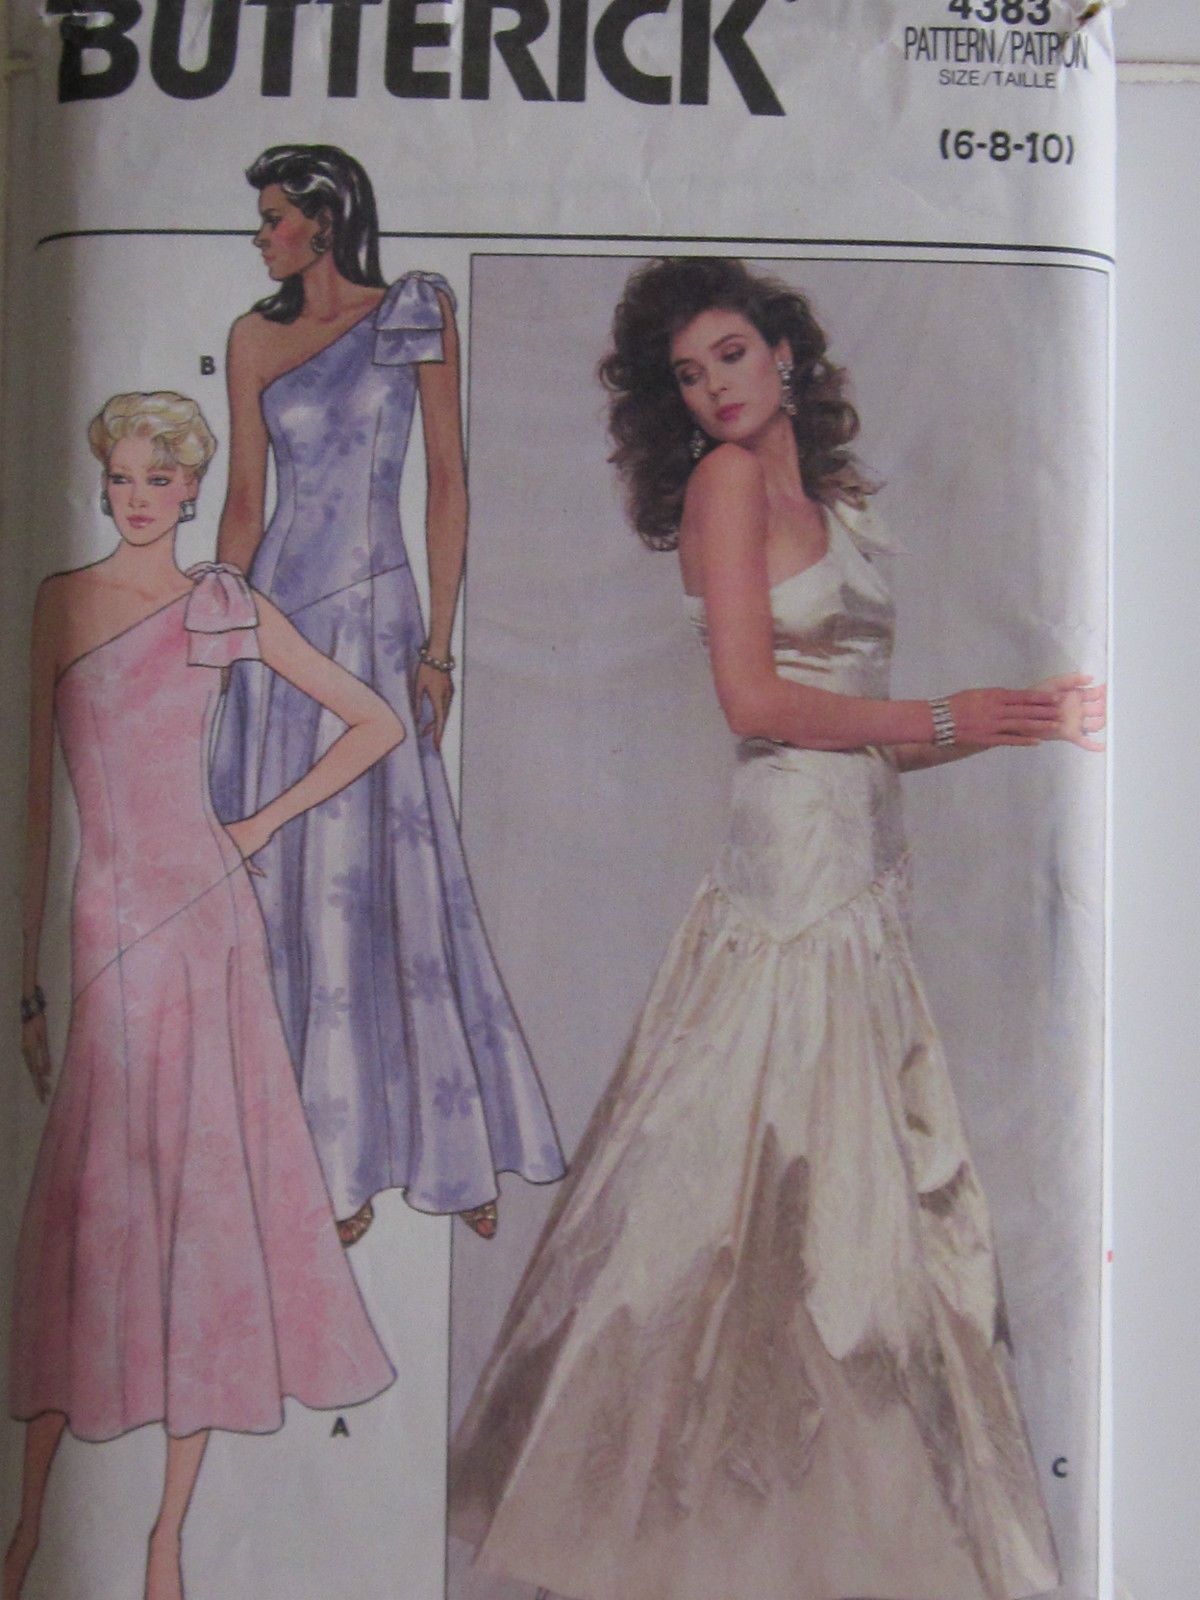 Butterick 4383 misses evening prom dress one shoulder pattern cut butterick 4383 misses evening prom dress one shoulder pattern cut to size 8 used jeuxipadfo Image collections